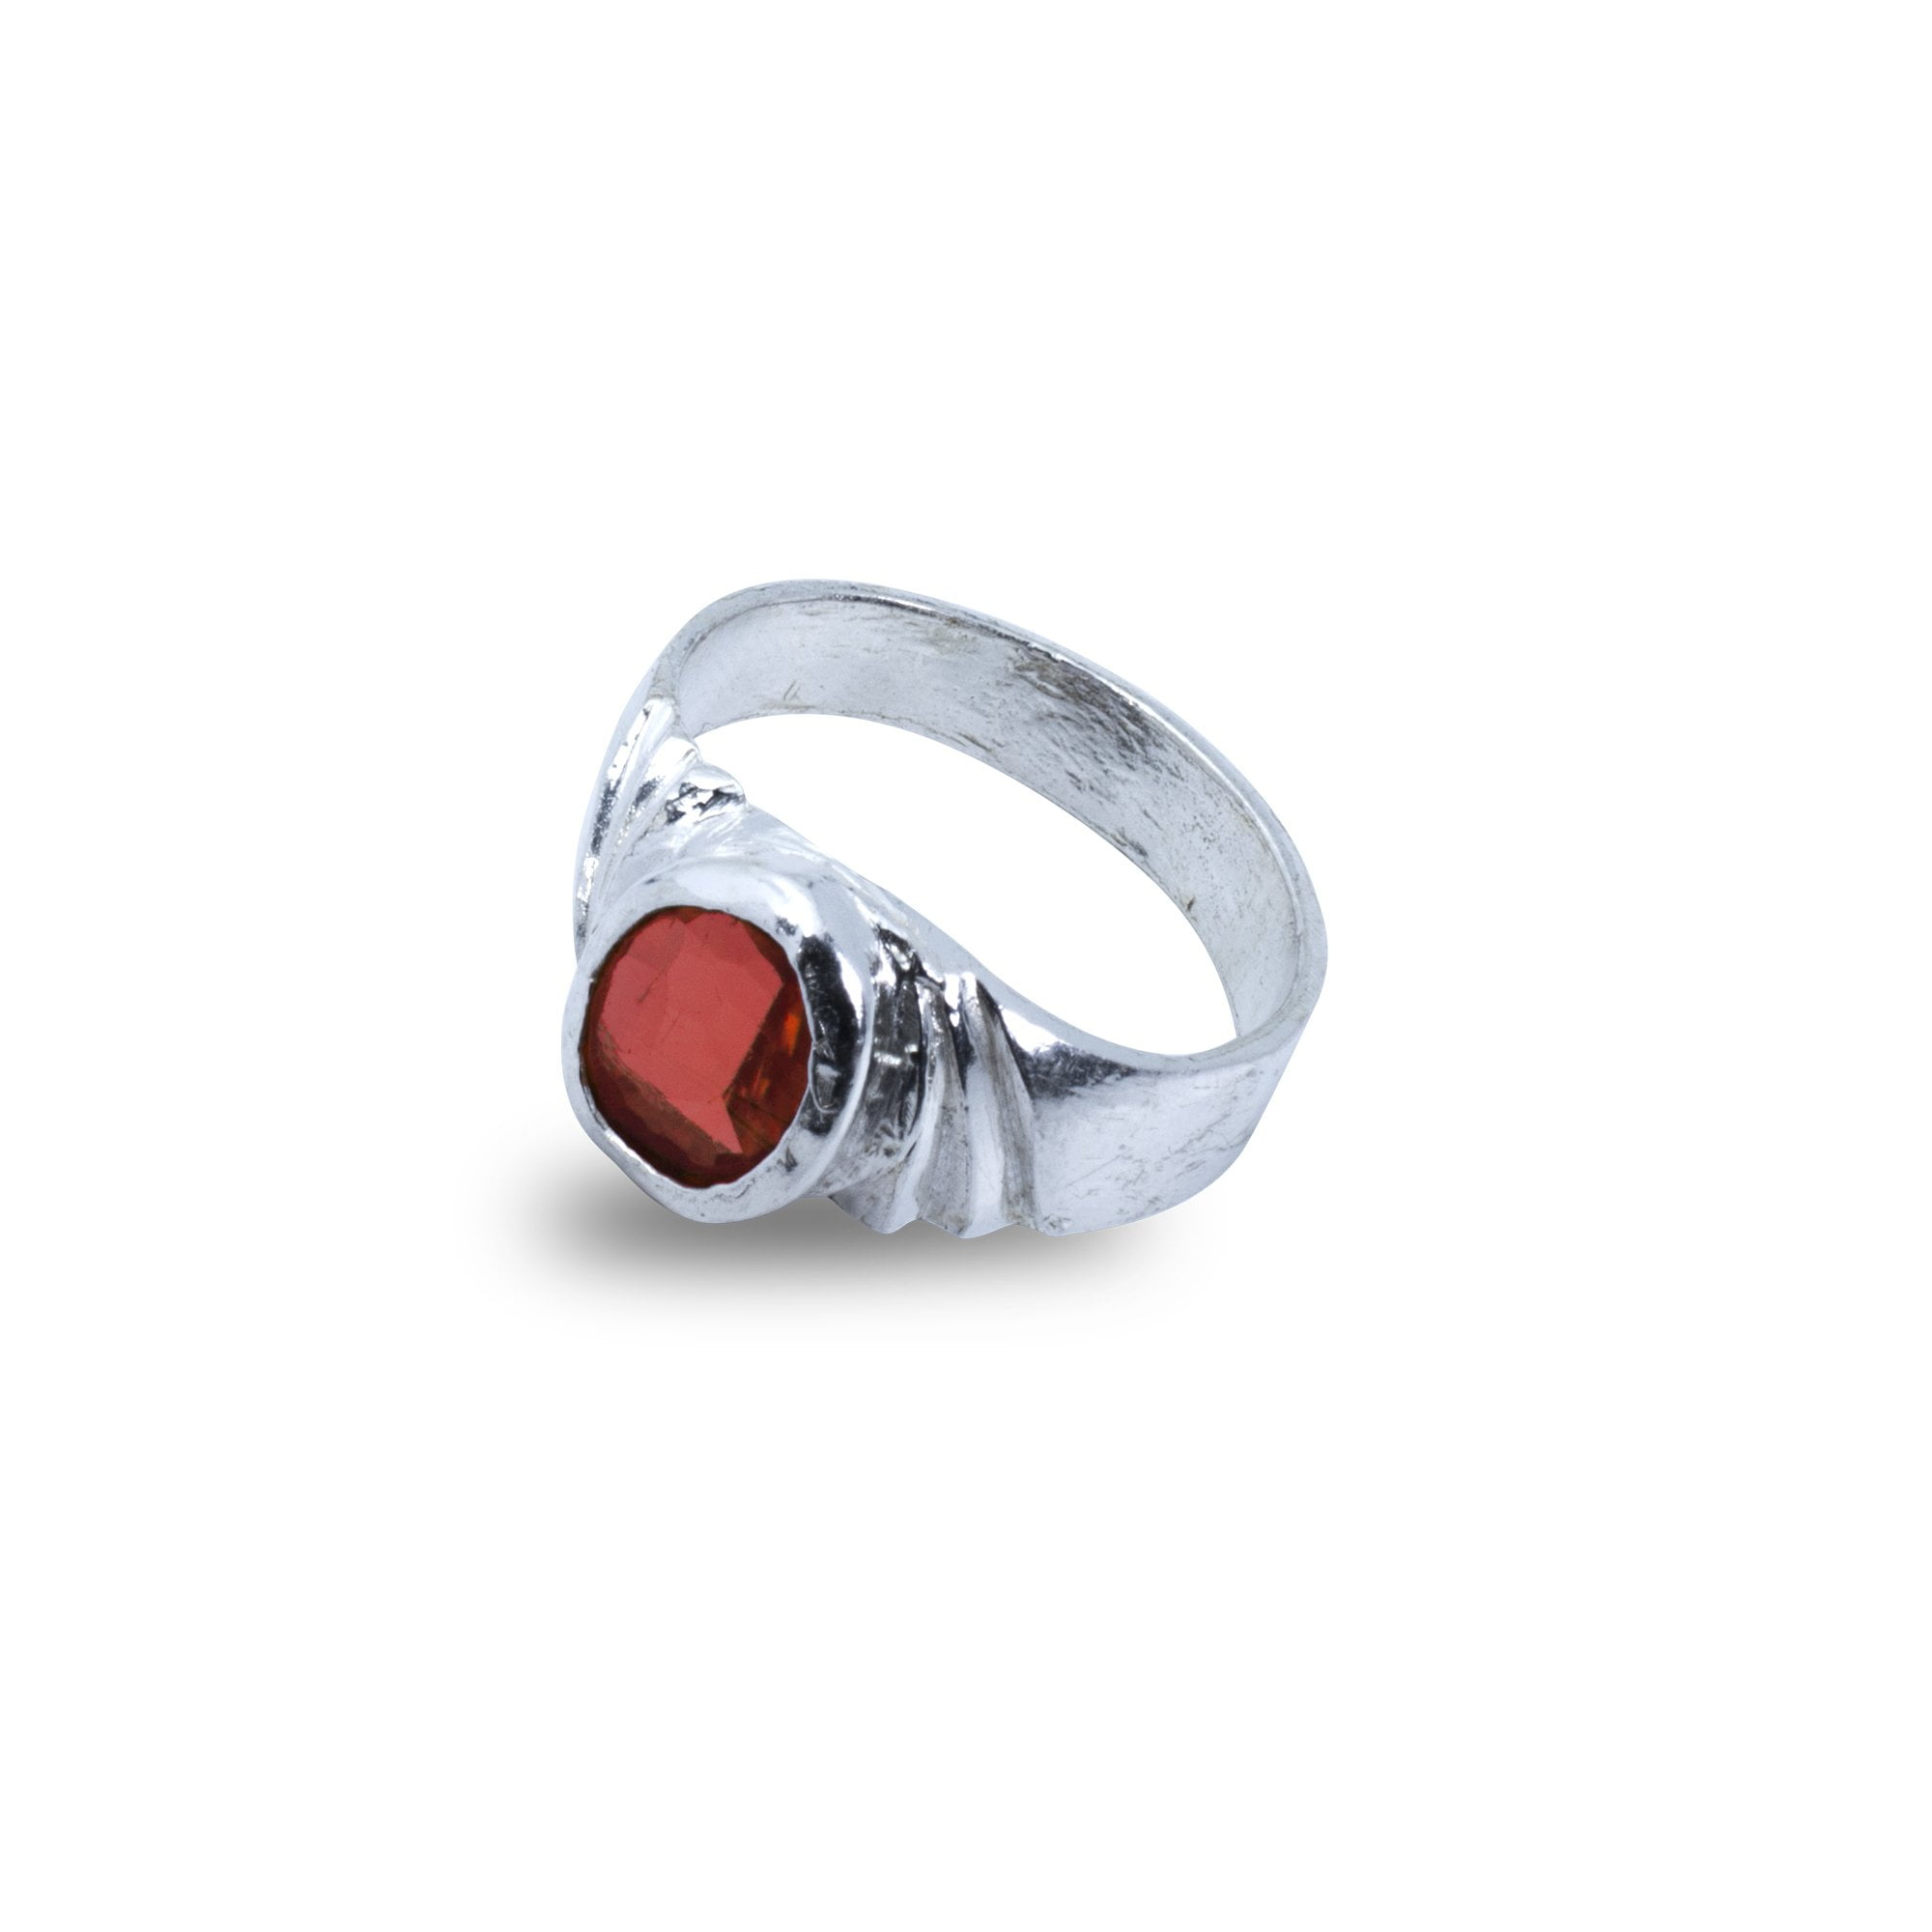 Gomed Silver Ring